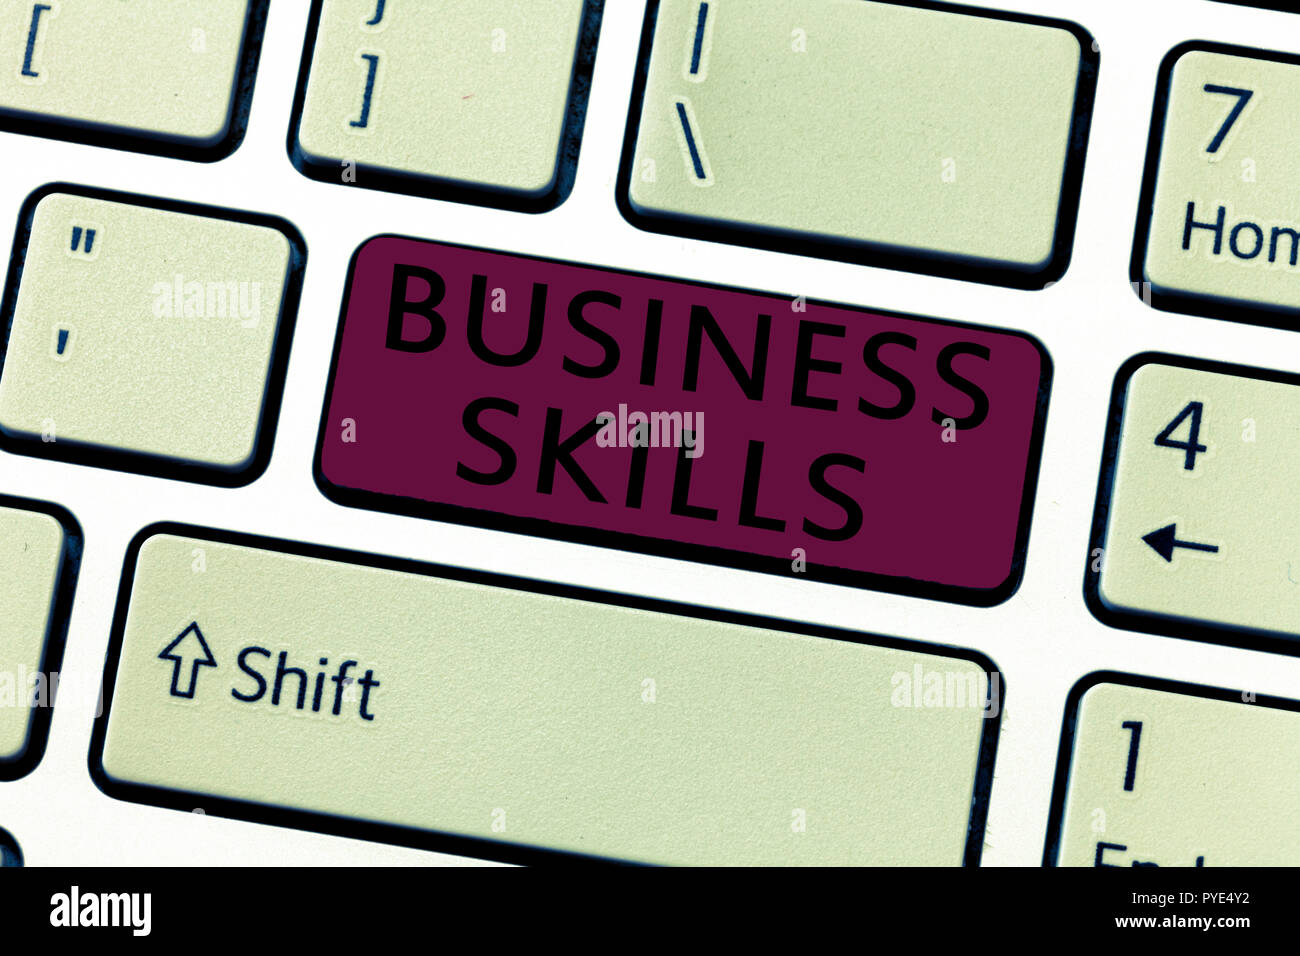 Word writing text Business Skills. Business concept for An ability to acquire systematic effort of job functions. - Stock Image